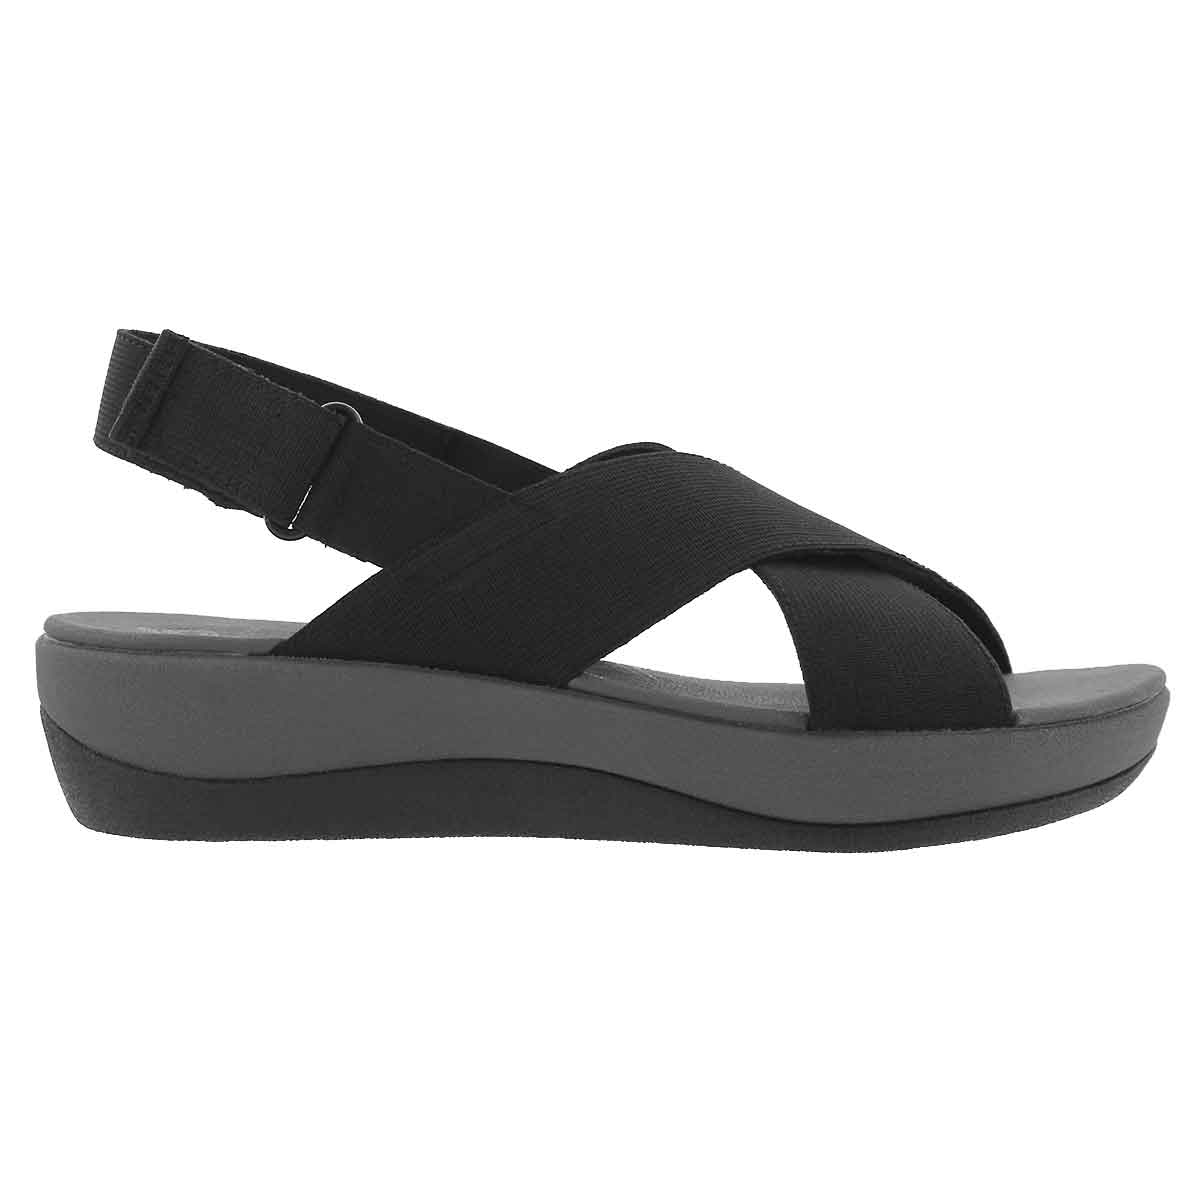 Lds Arla Kaydin black wedge sandal